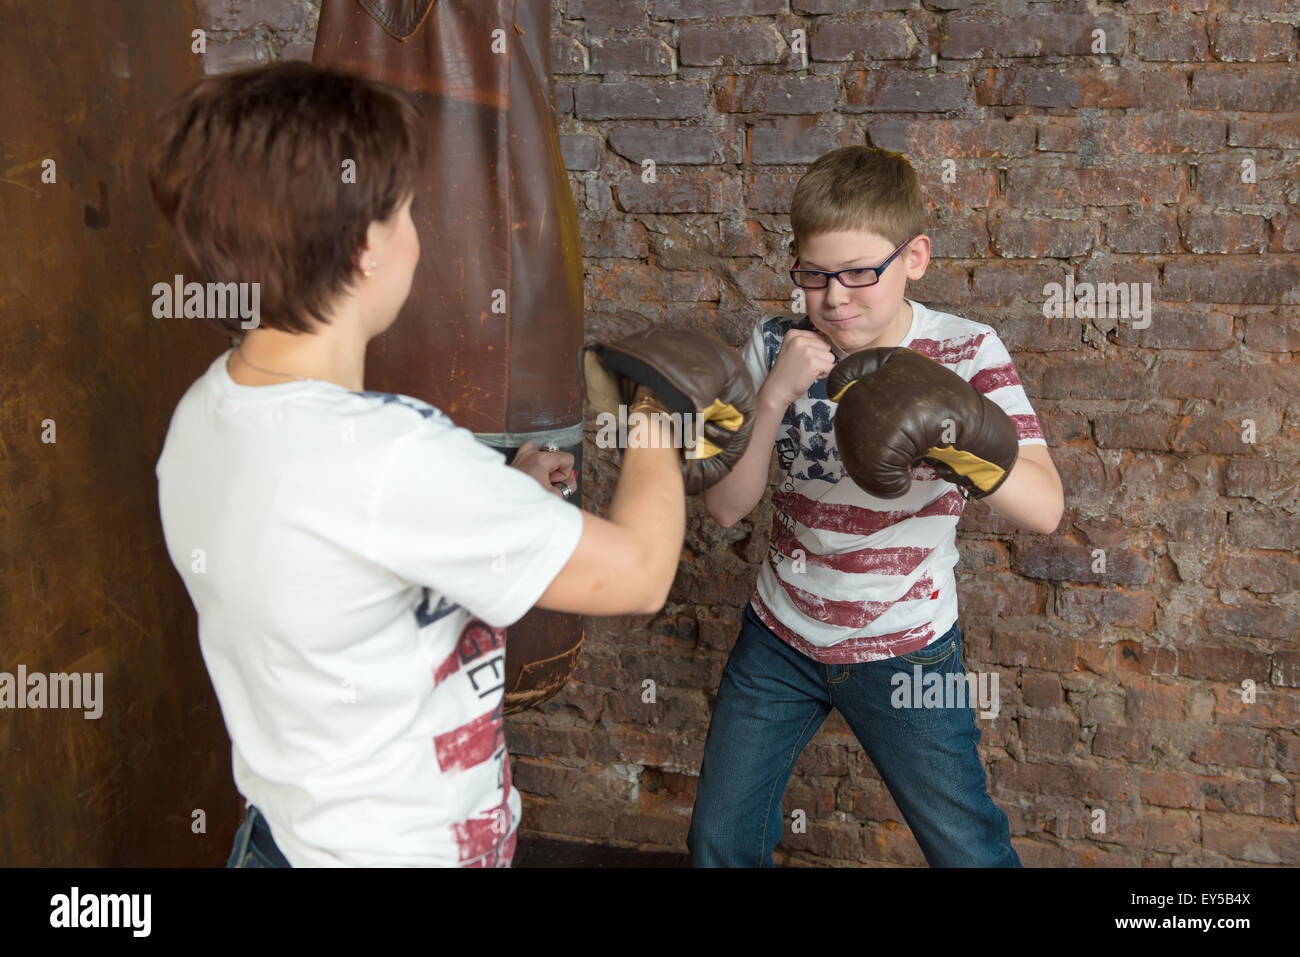 Mother and son - teenager about punching bag - Stock Image